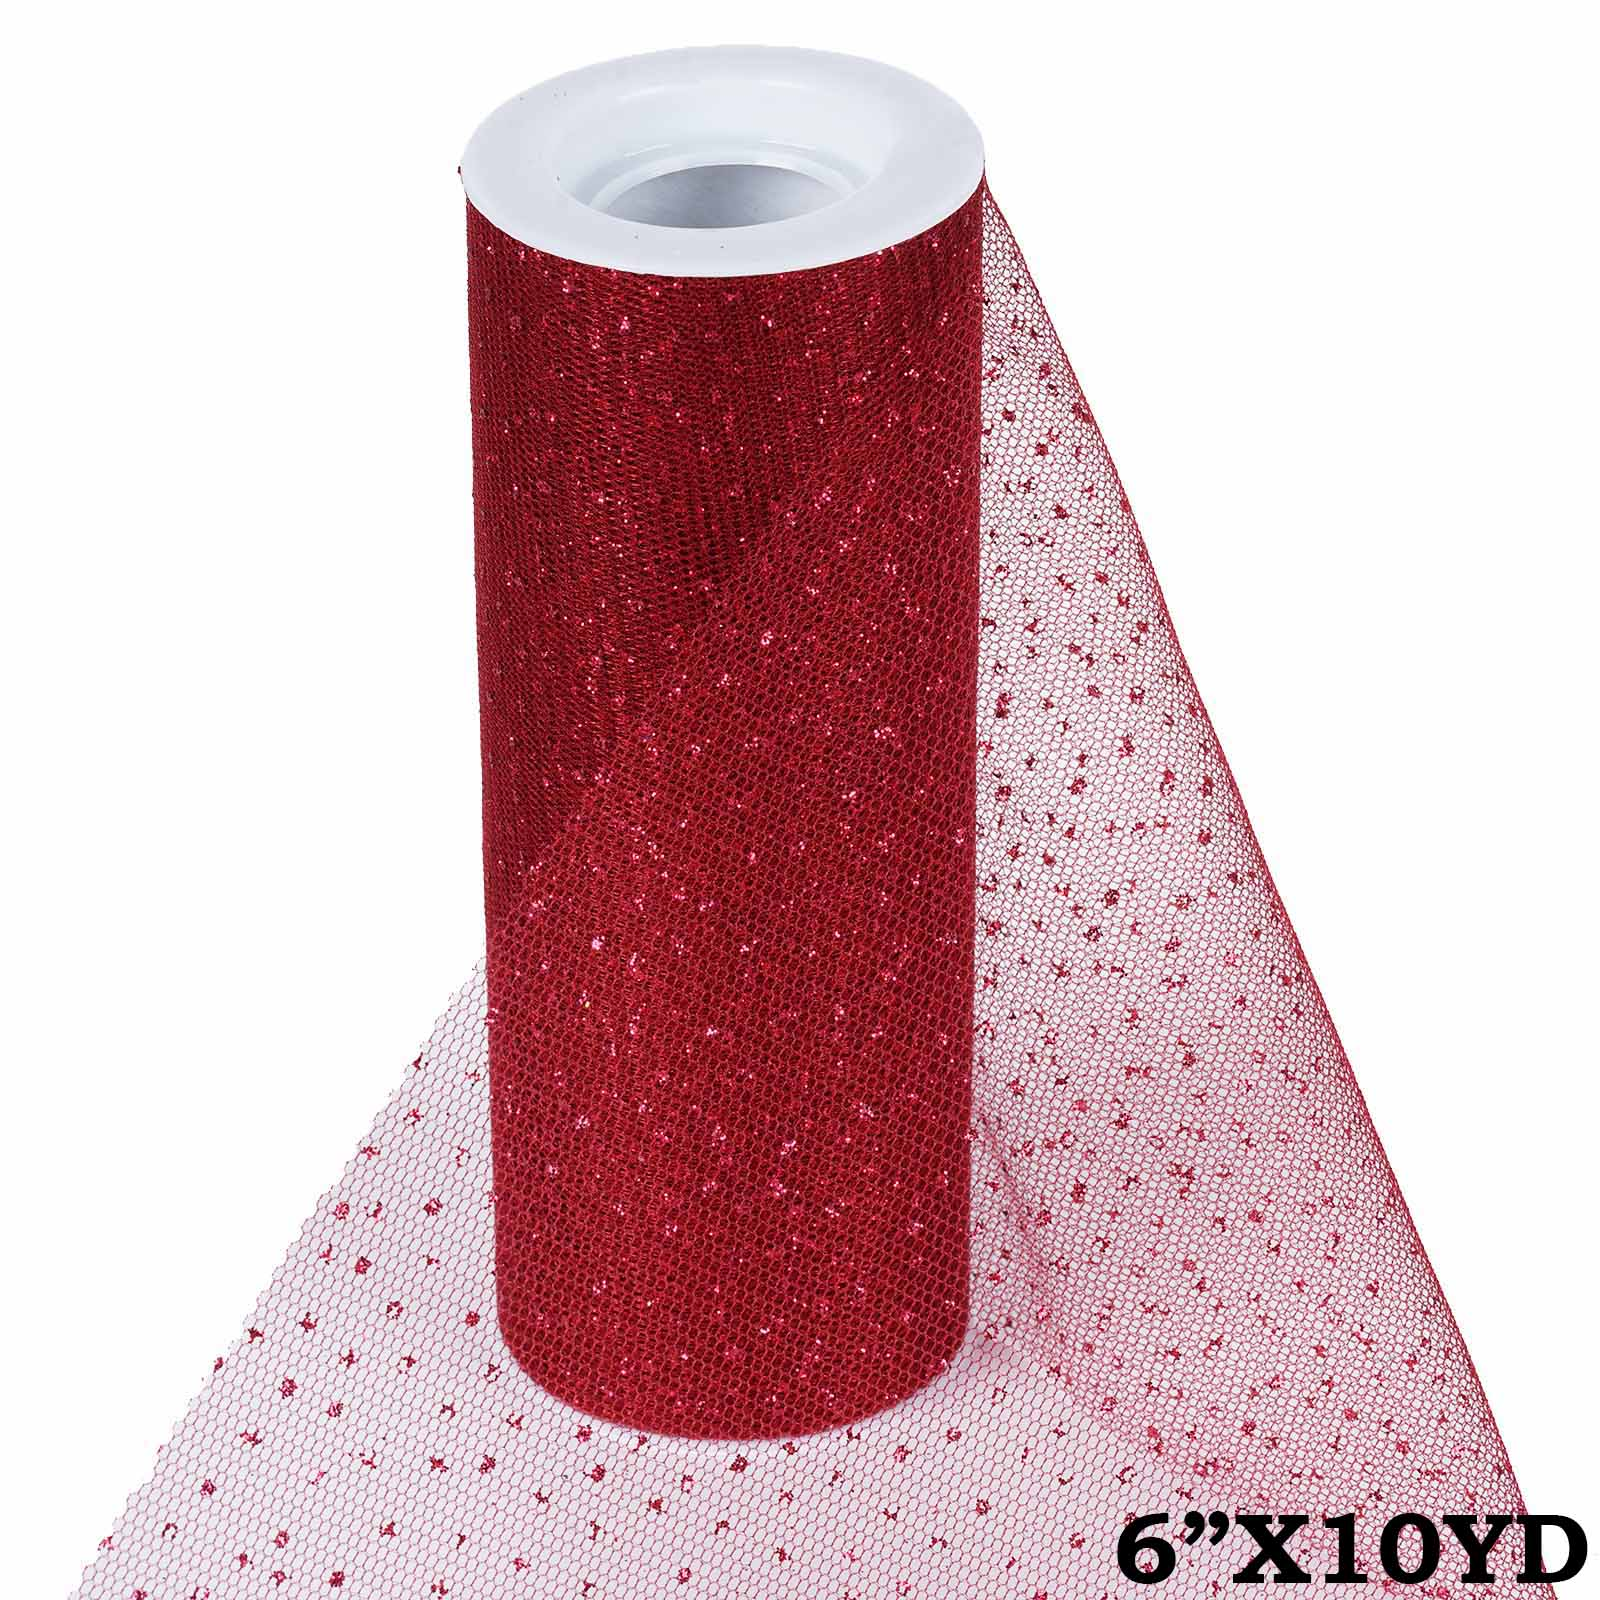 Efavormart Wedding Banquet Party Decoration Glittered Tulle Ribbon Roll 6 inches x 10 yards